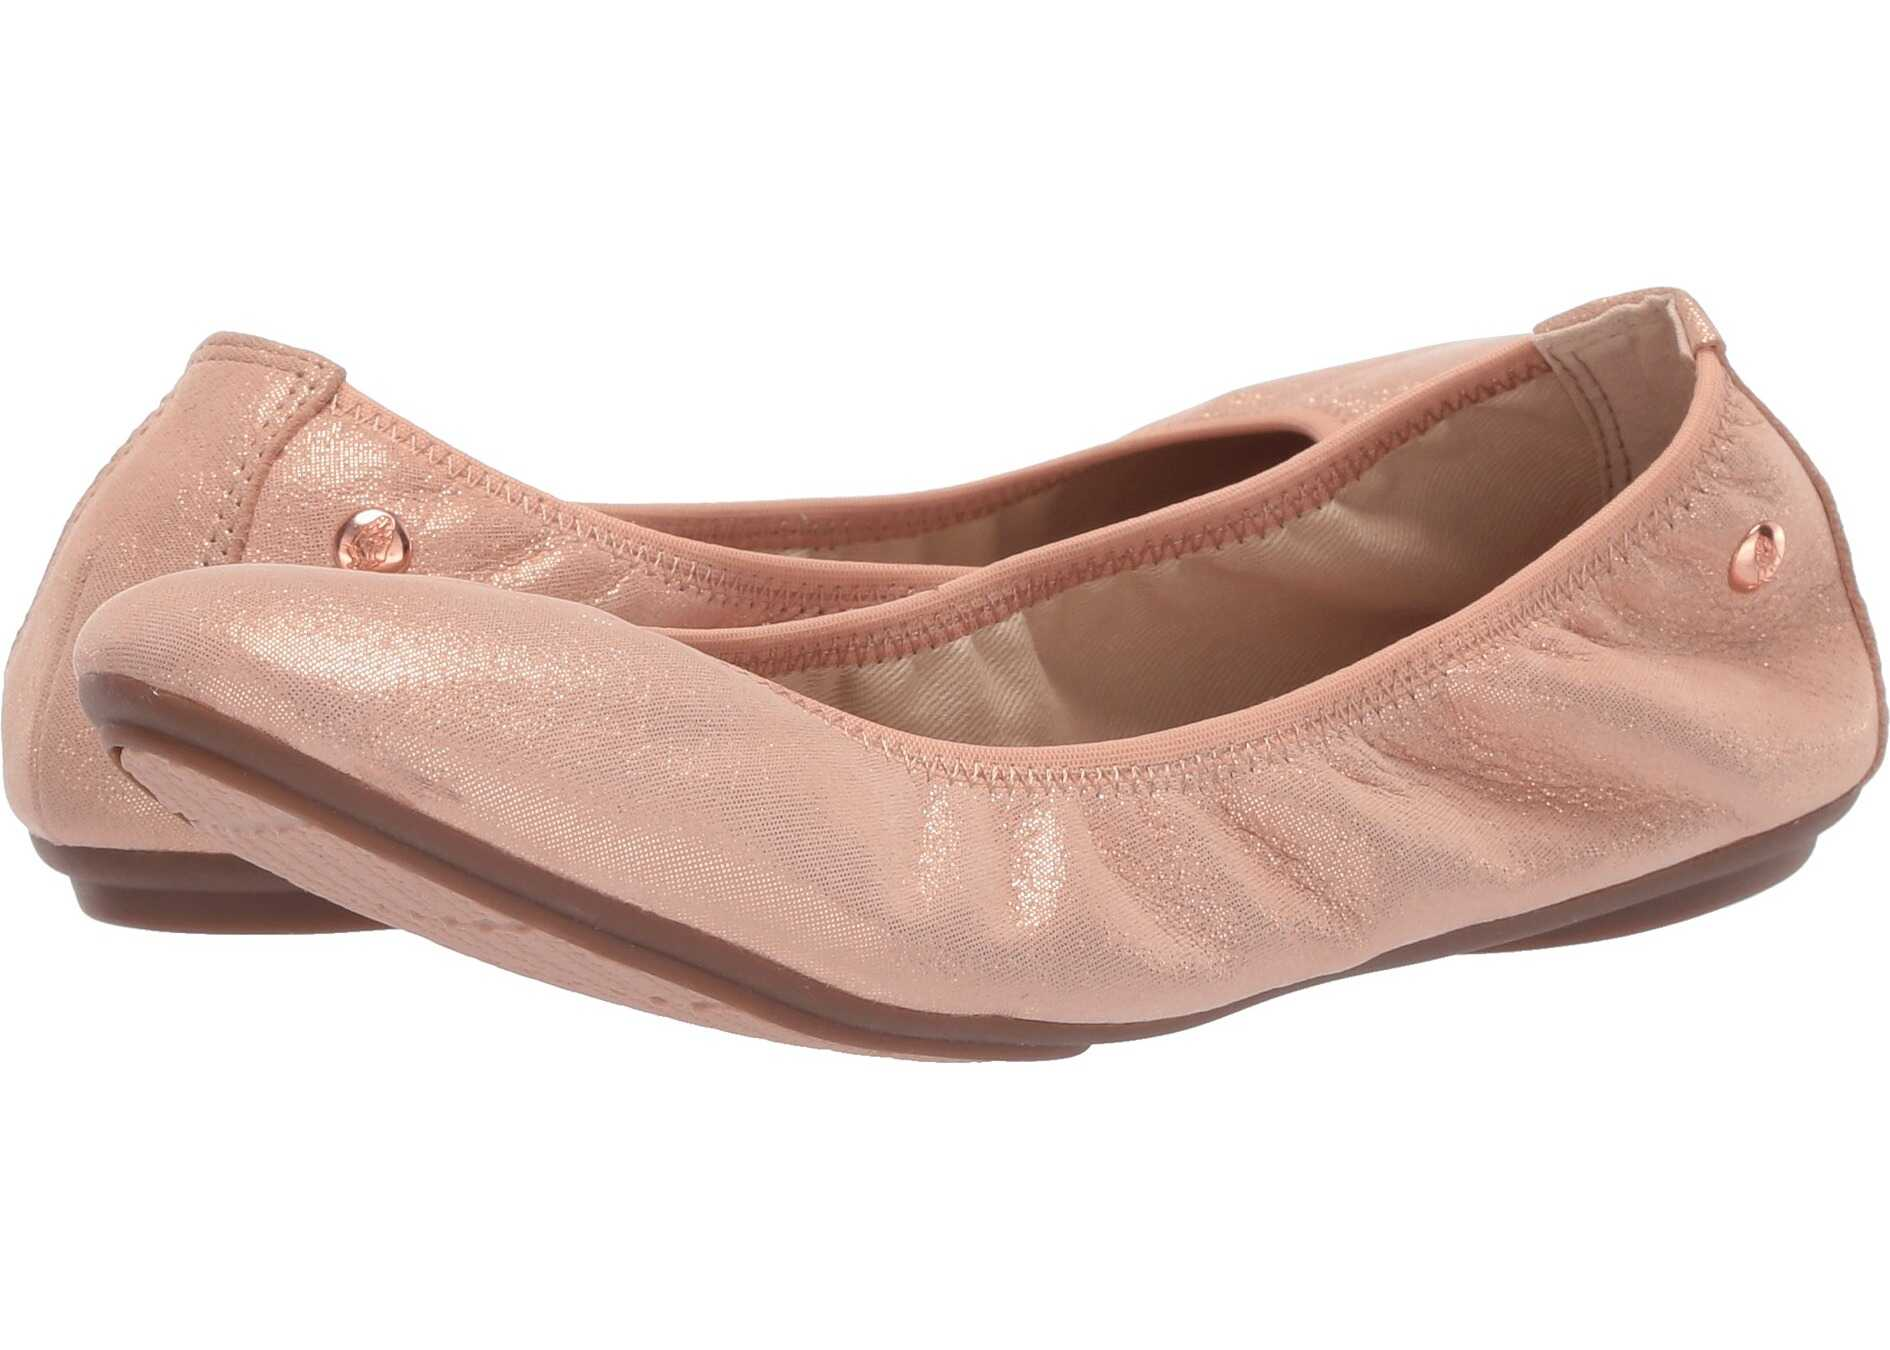 Hush Puppies Chaste Ballet Pale Peach Leather